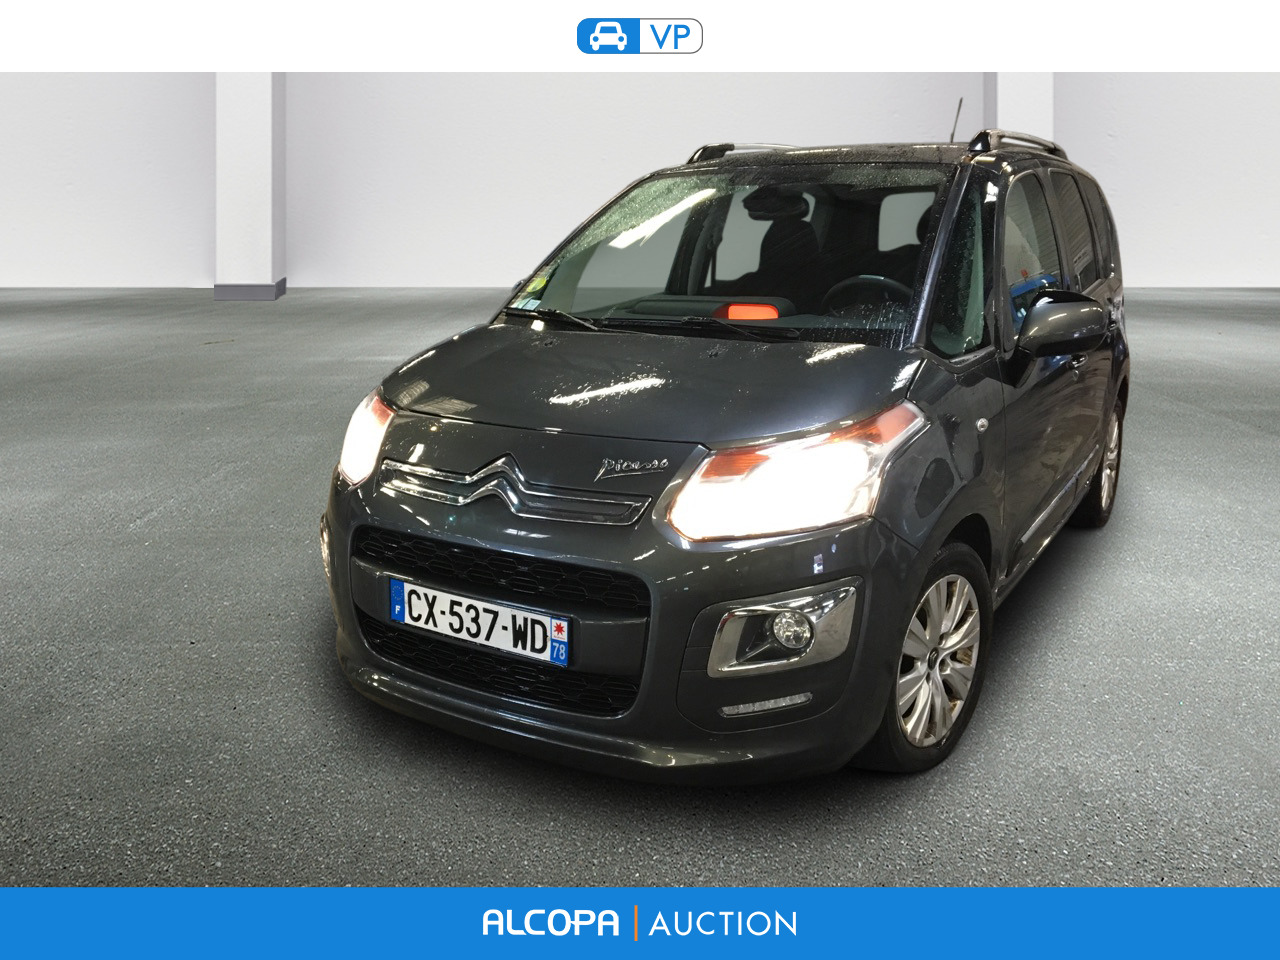 citroen c3 picasso 01 2013 07 2017 c3 picasso e hdi 90 exclusive bmp6 alcopa auction. Black Bedroom Furniture Sets. Home Design Ideas